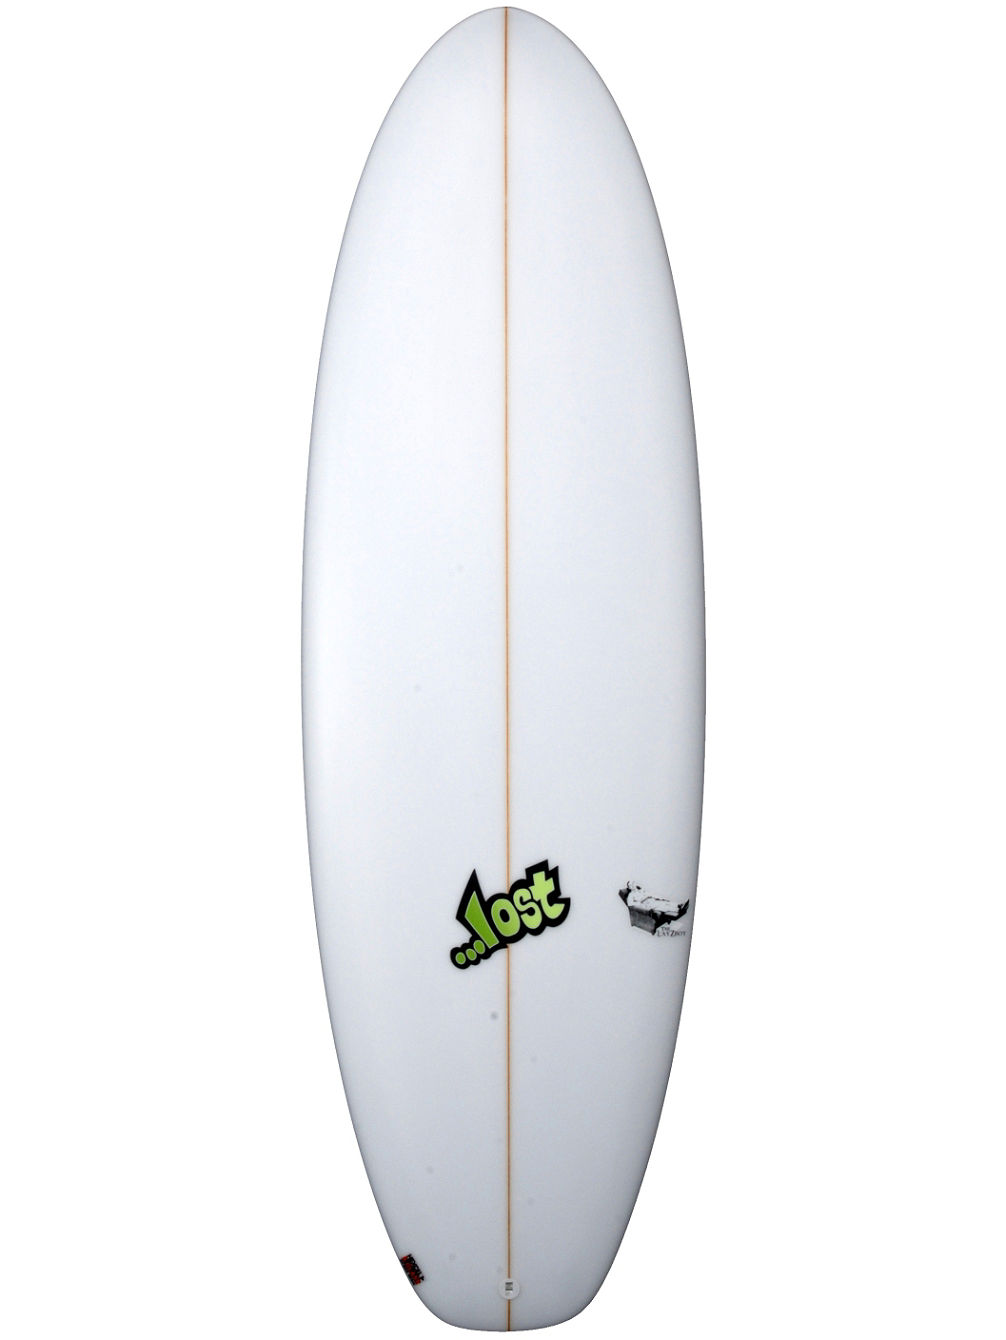 Lazy Toy 6'6 Surfboard